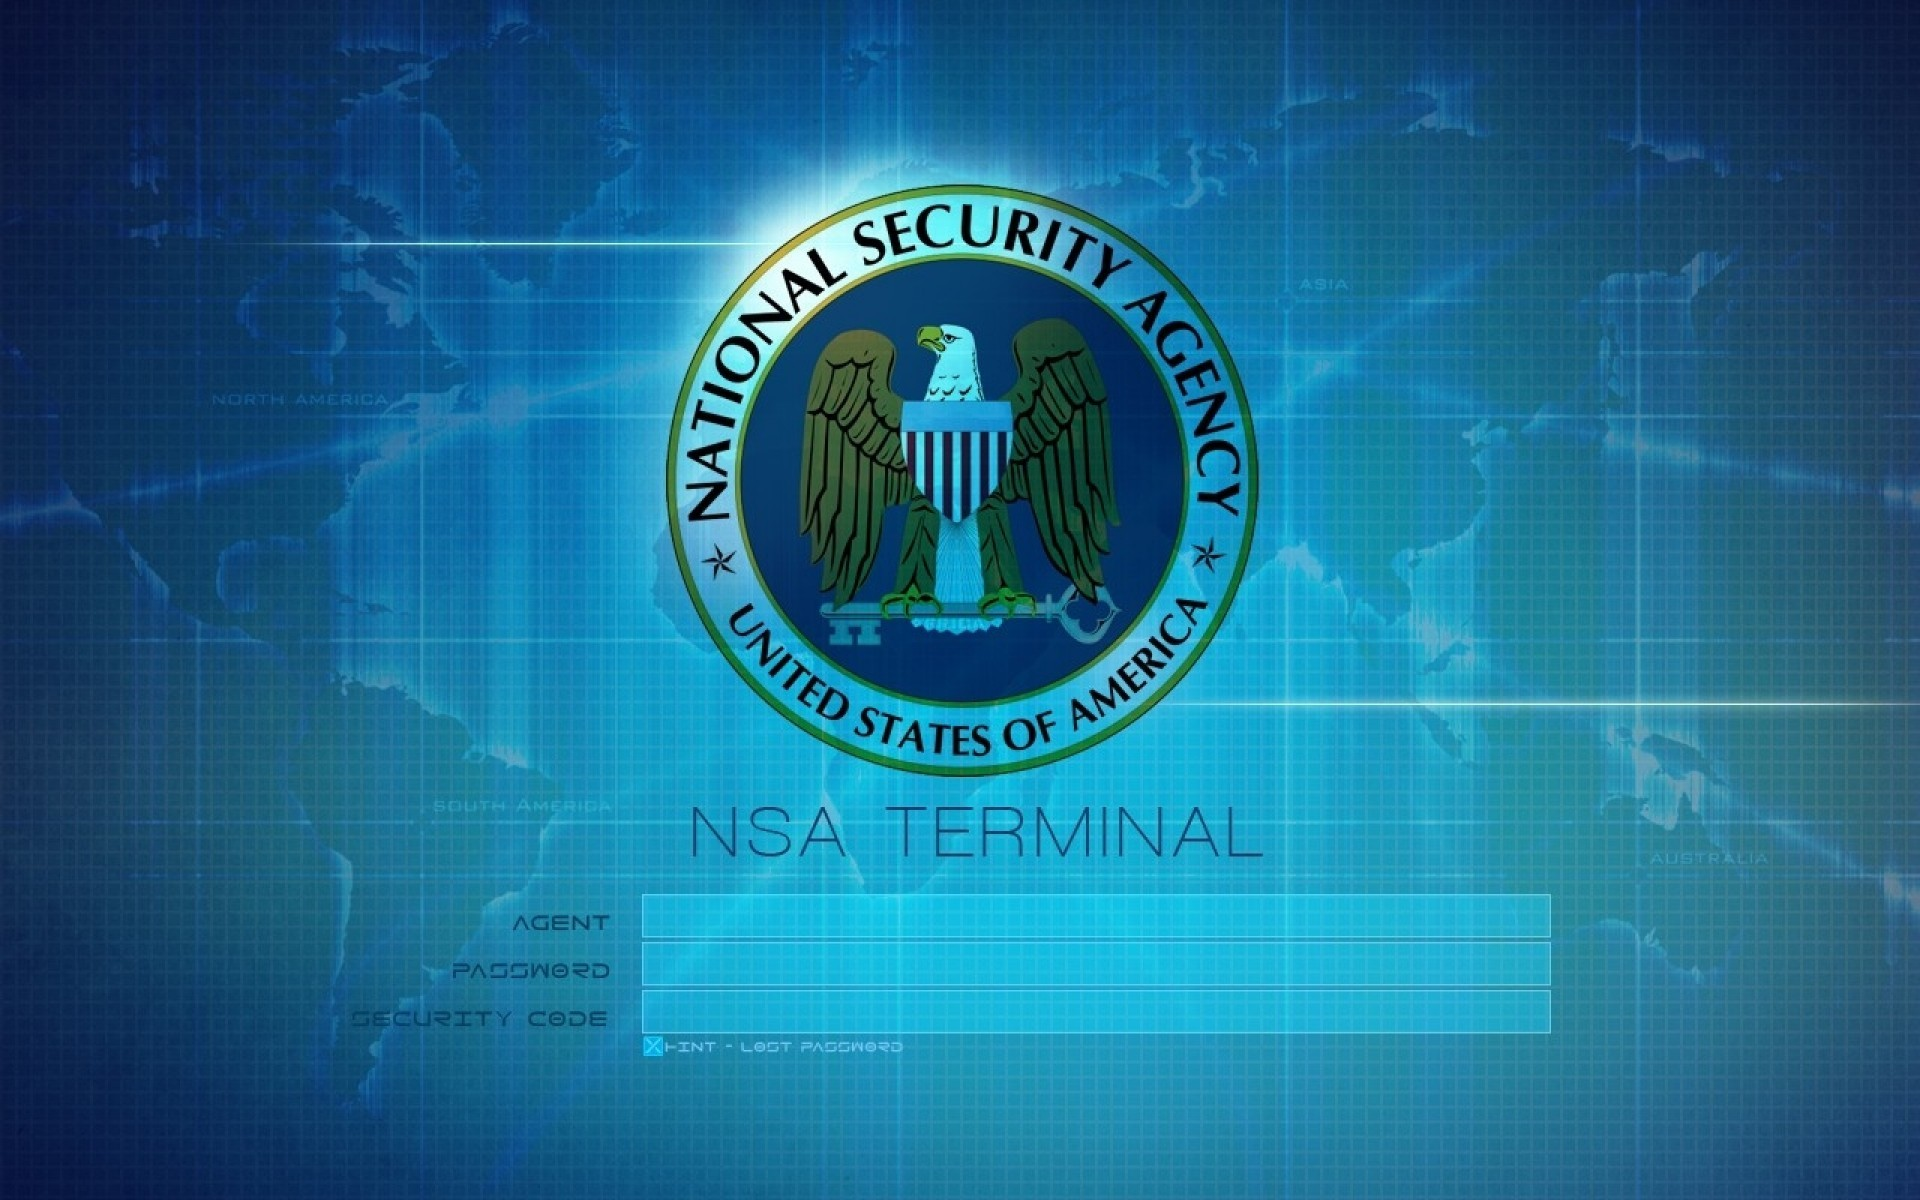 Box login the National Security Agency